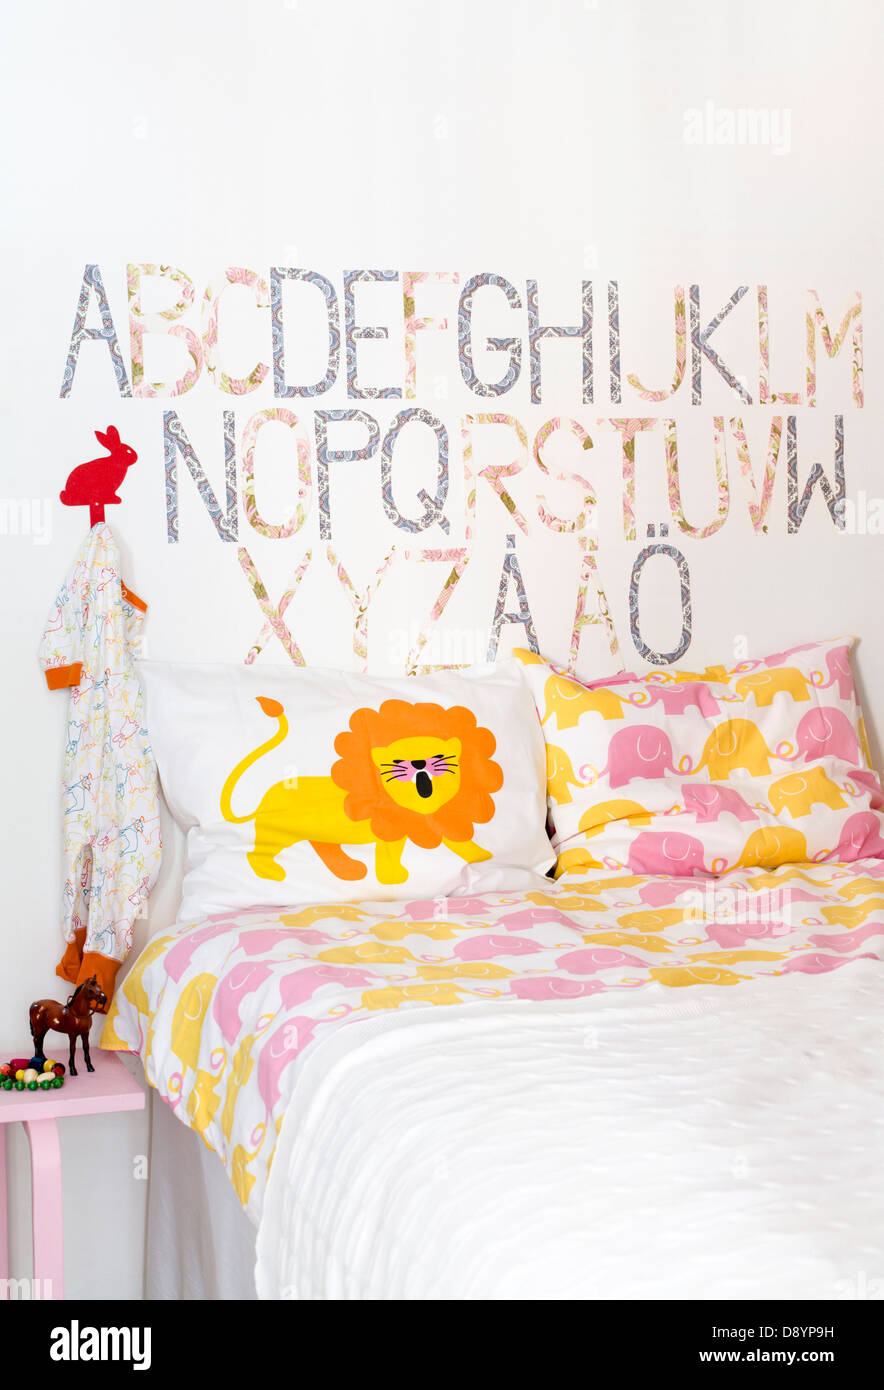 Nursery room with bed and alphabets on wall - Stock Image